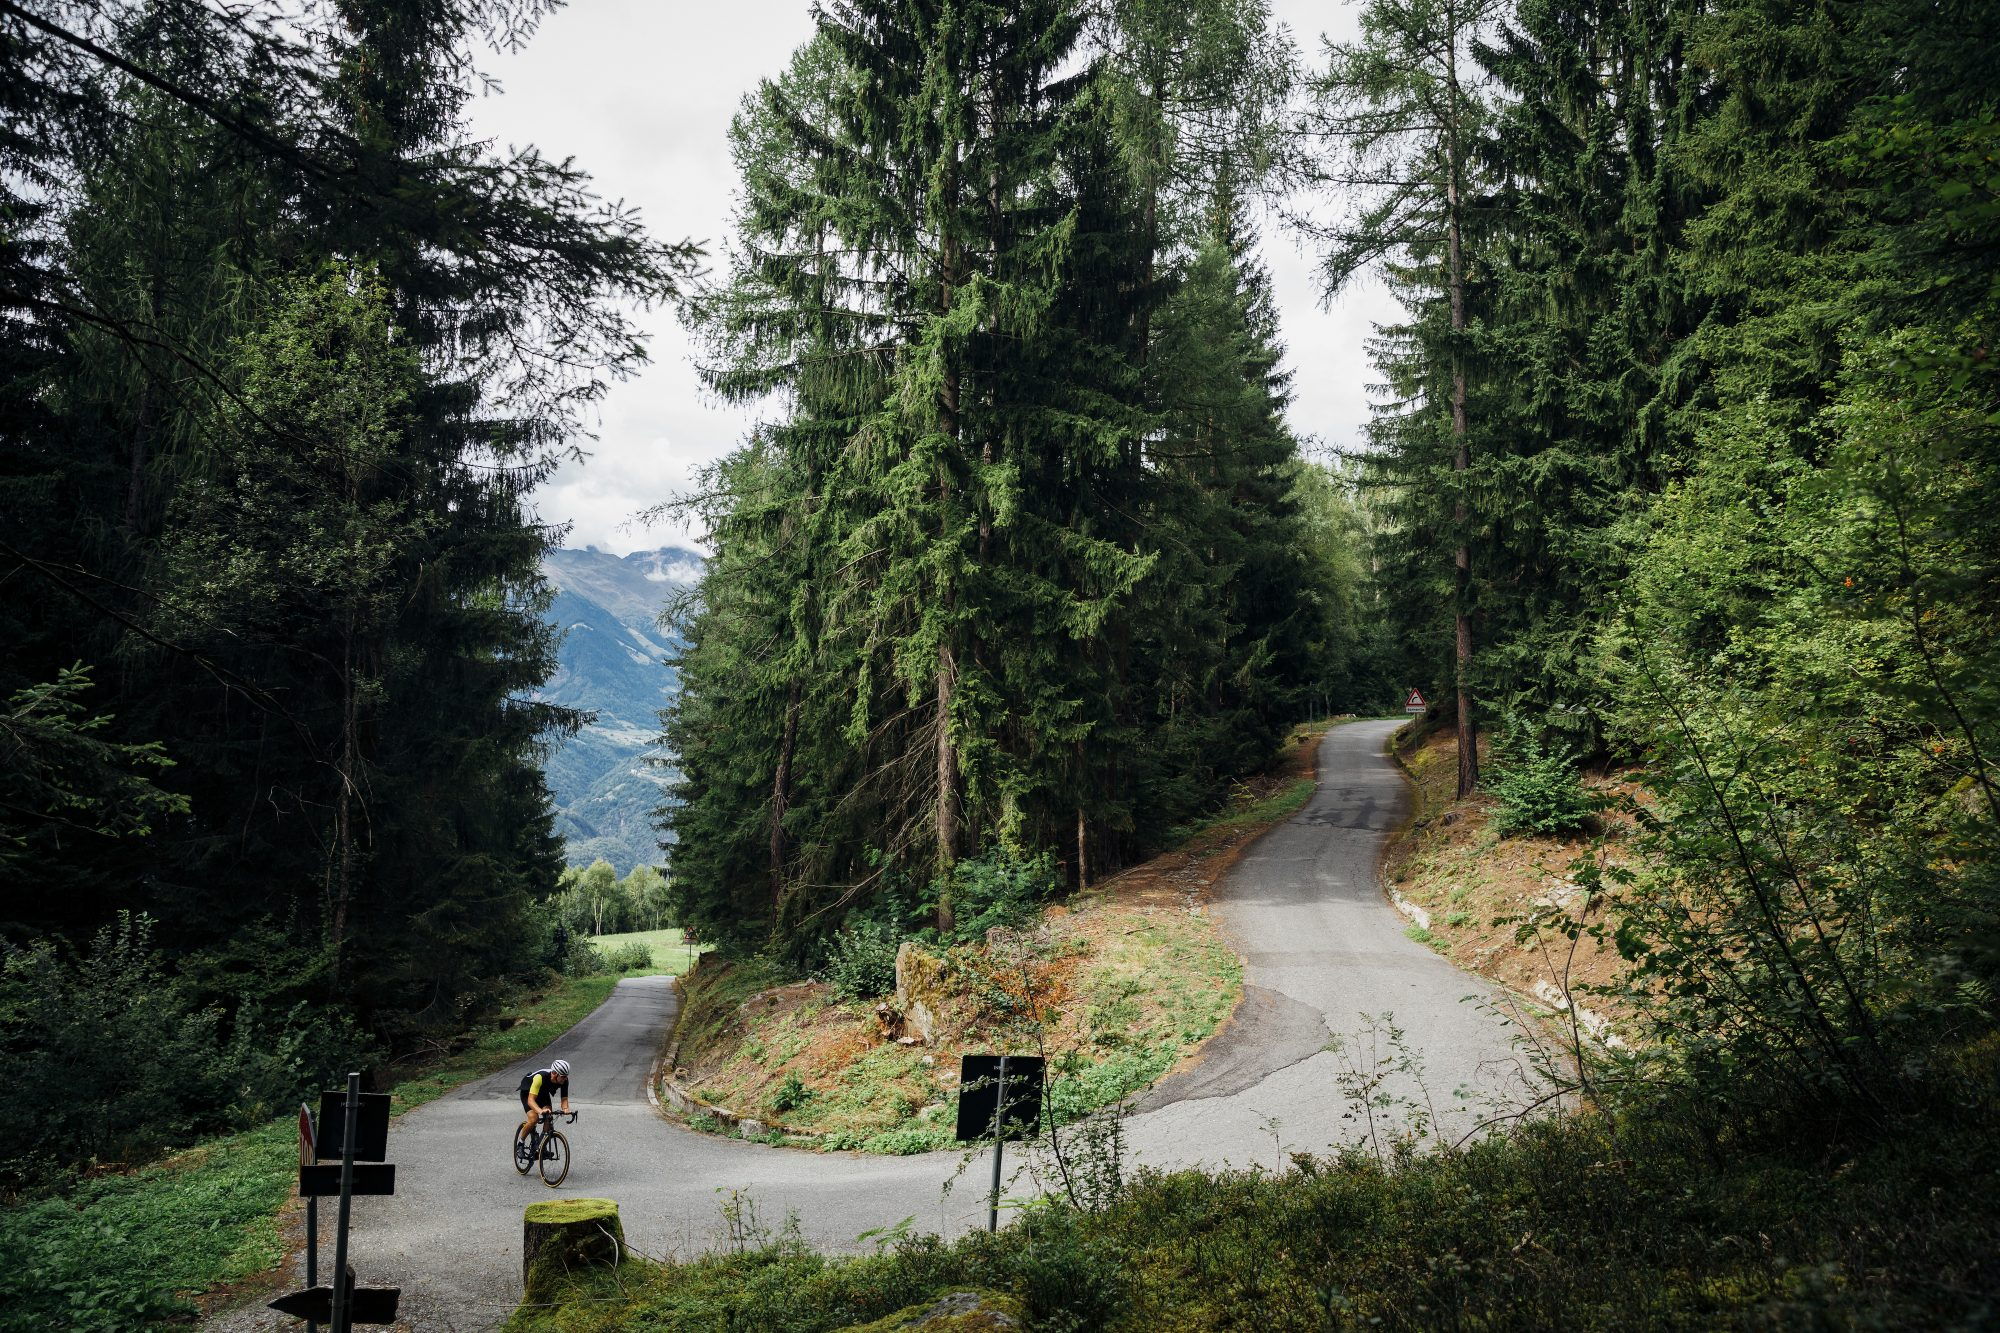 Riding the Mortirolo: Cycling's toughest climb